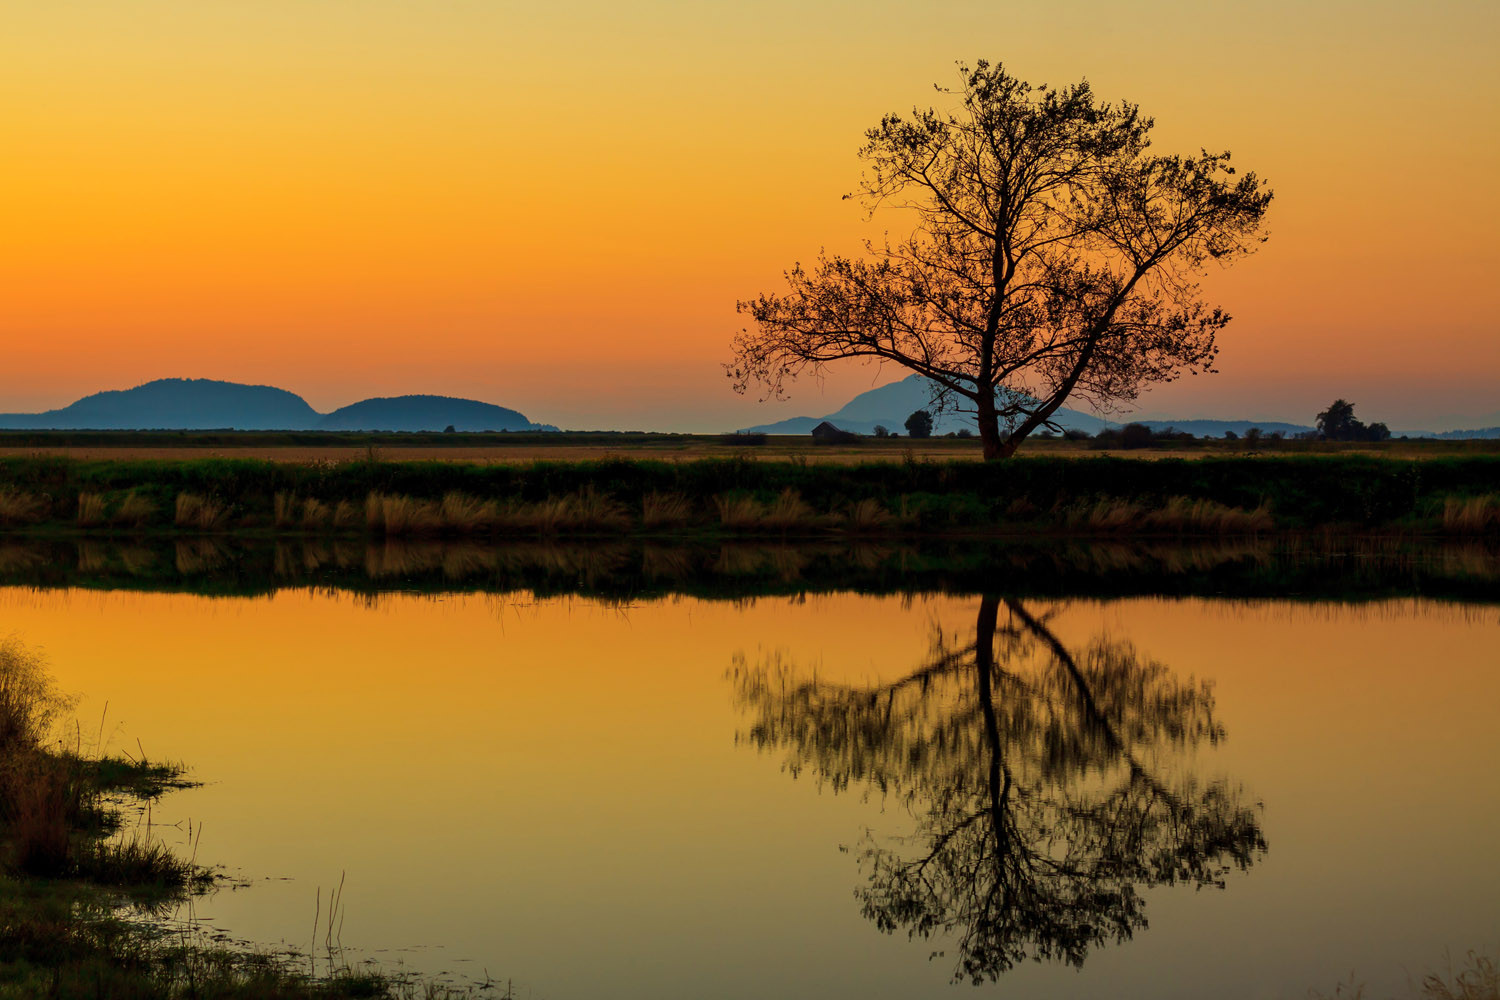 Lone-Tree-At-Sunset.jpg